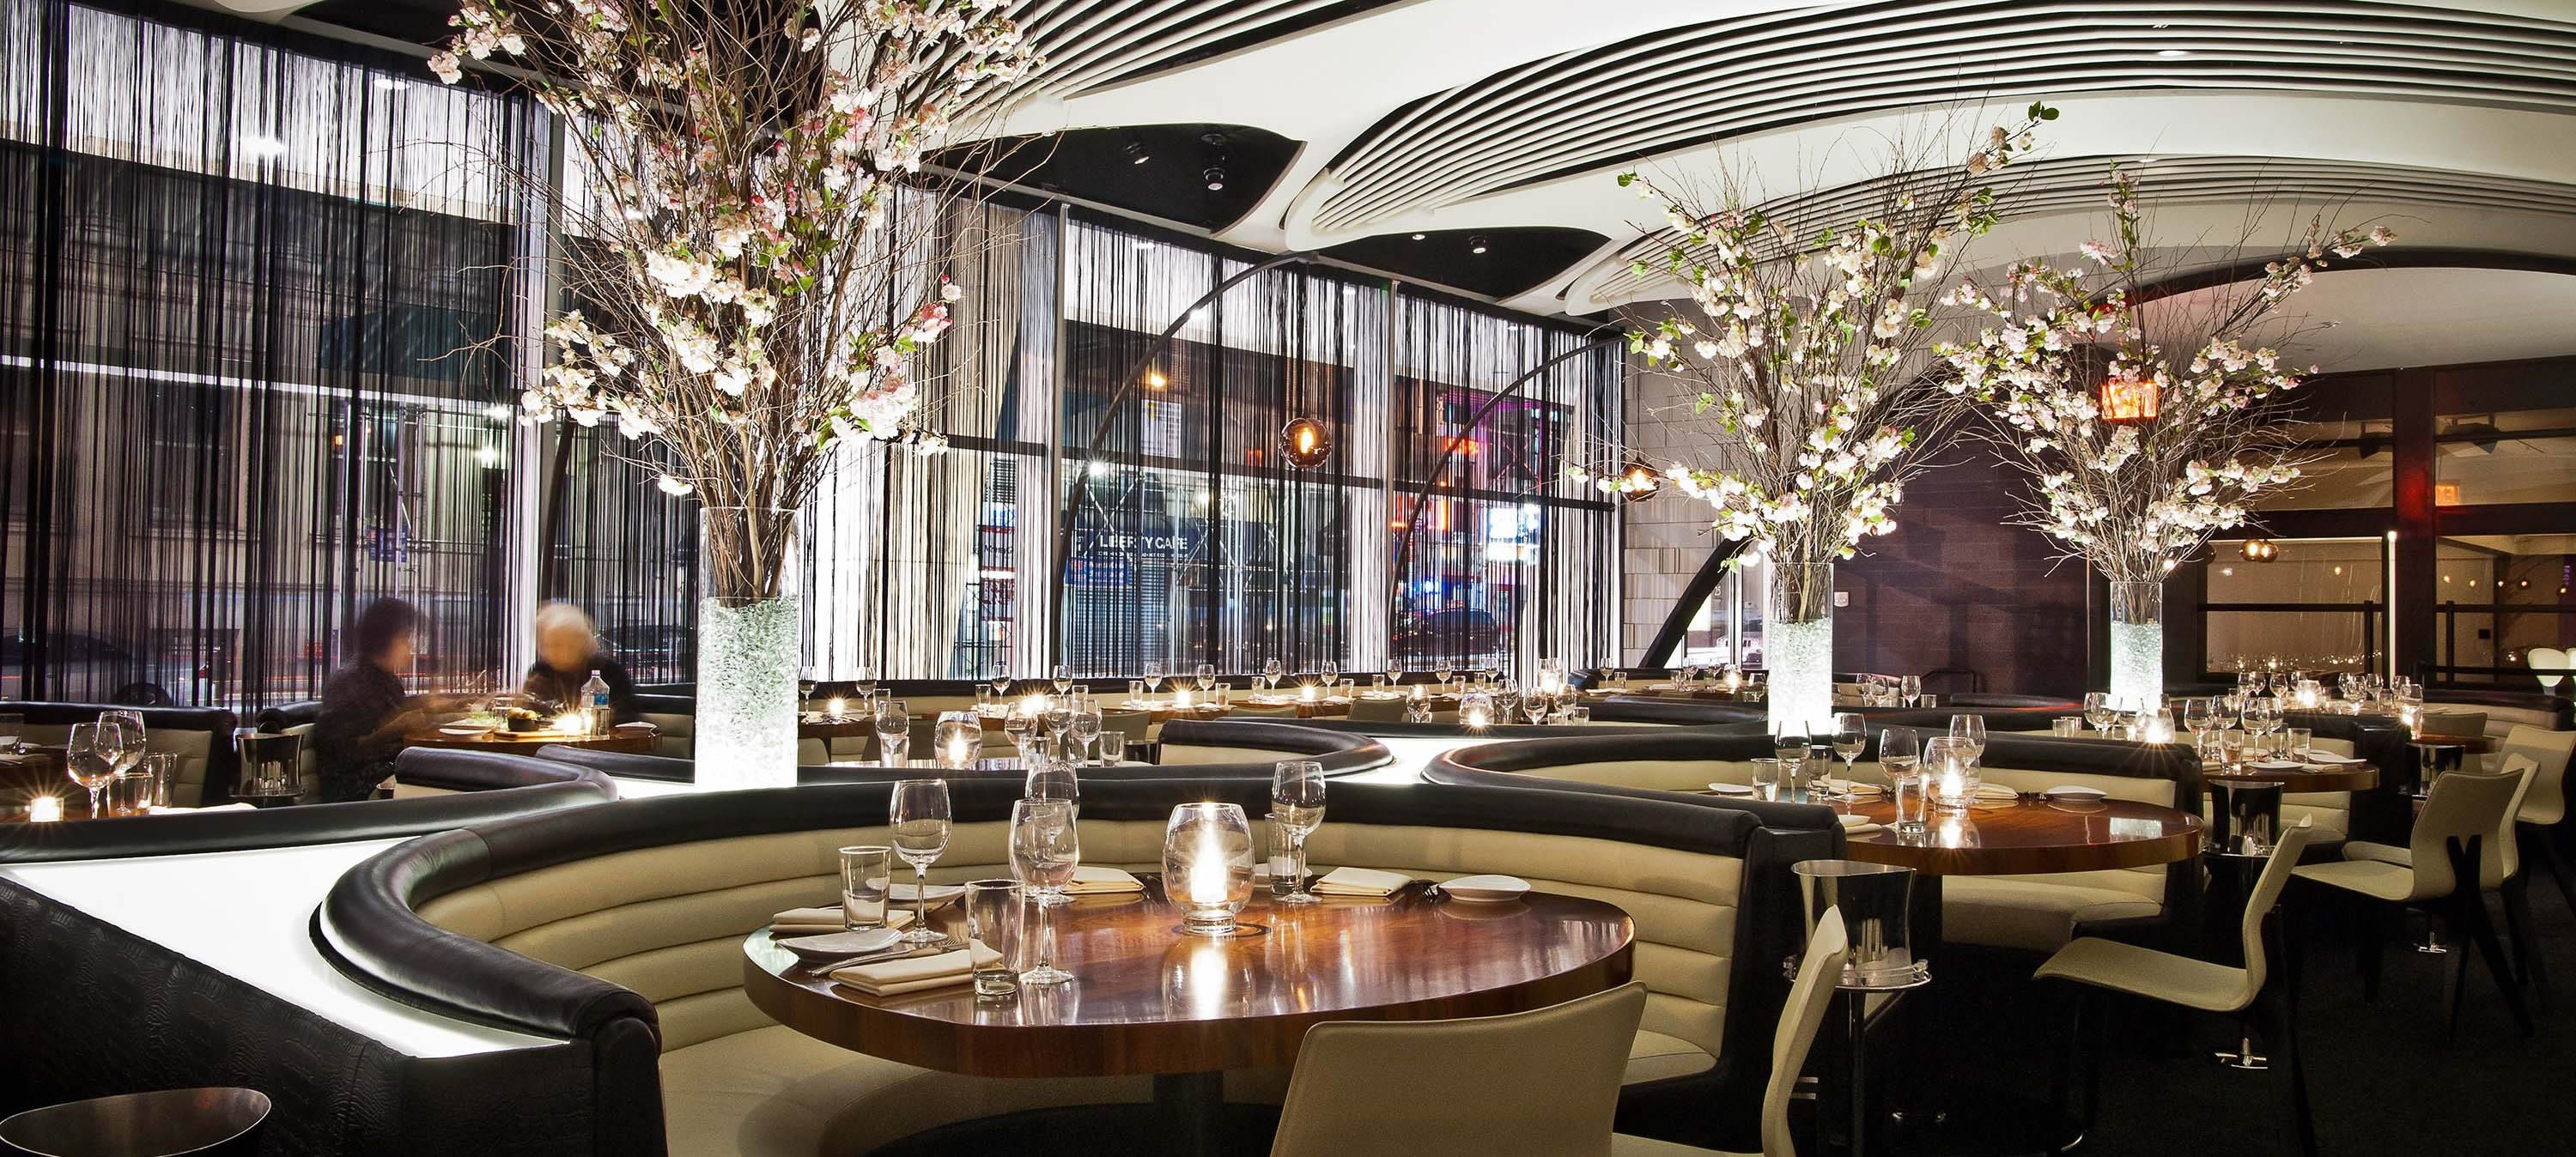 The One Group  Stk Ny  Hotel  F&b  Pinterest  Group Awesome Stk Private Dining Room Decorating Inspiration